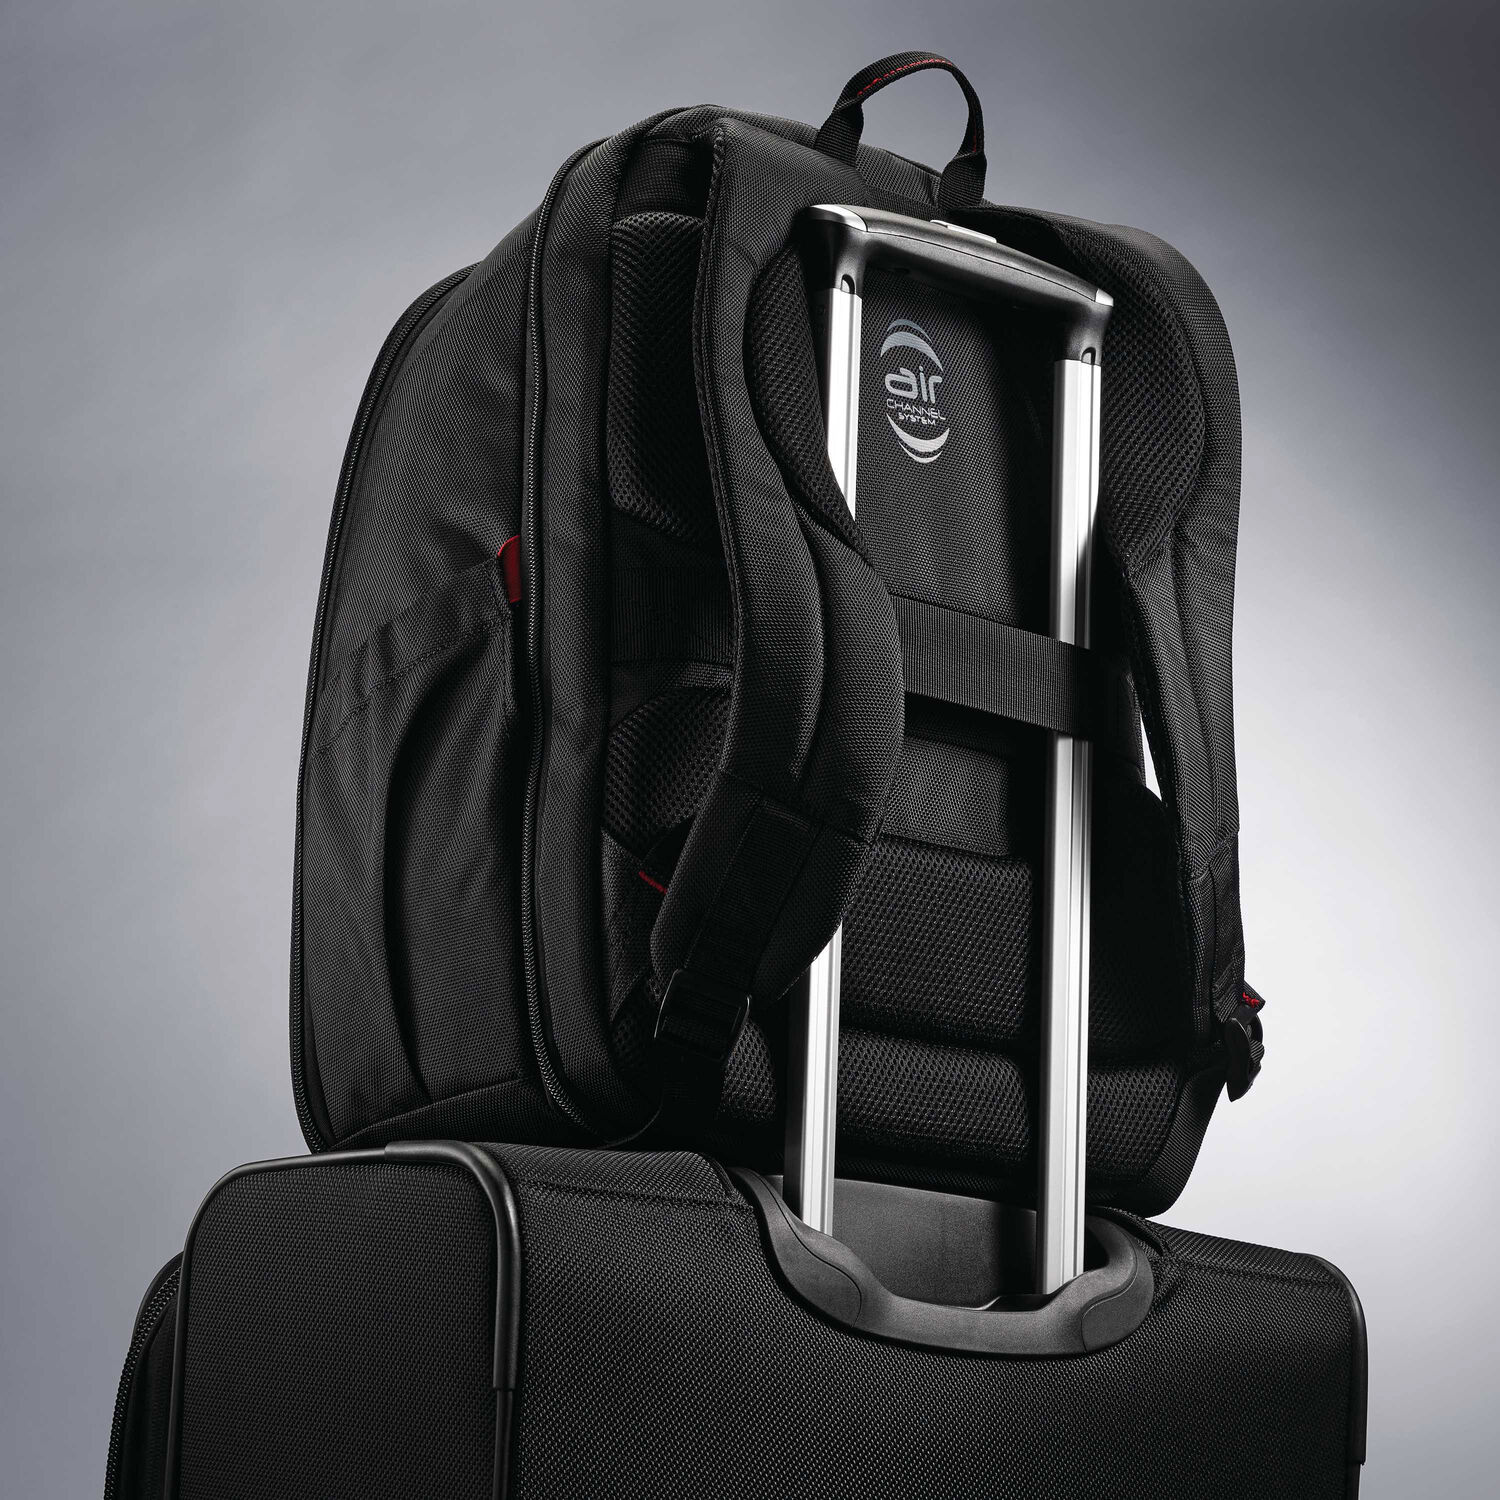 Samsonite Laptop Backpack Philippines- Fenix Toulouse Handball 0cdd146440ee8